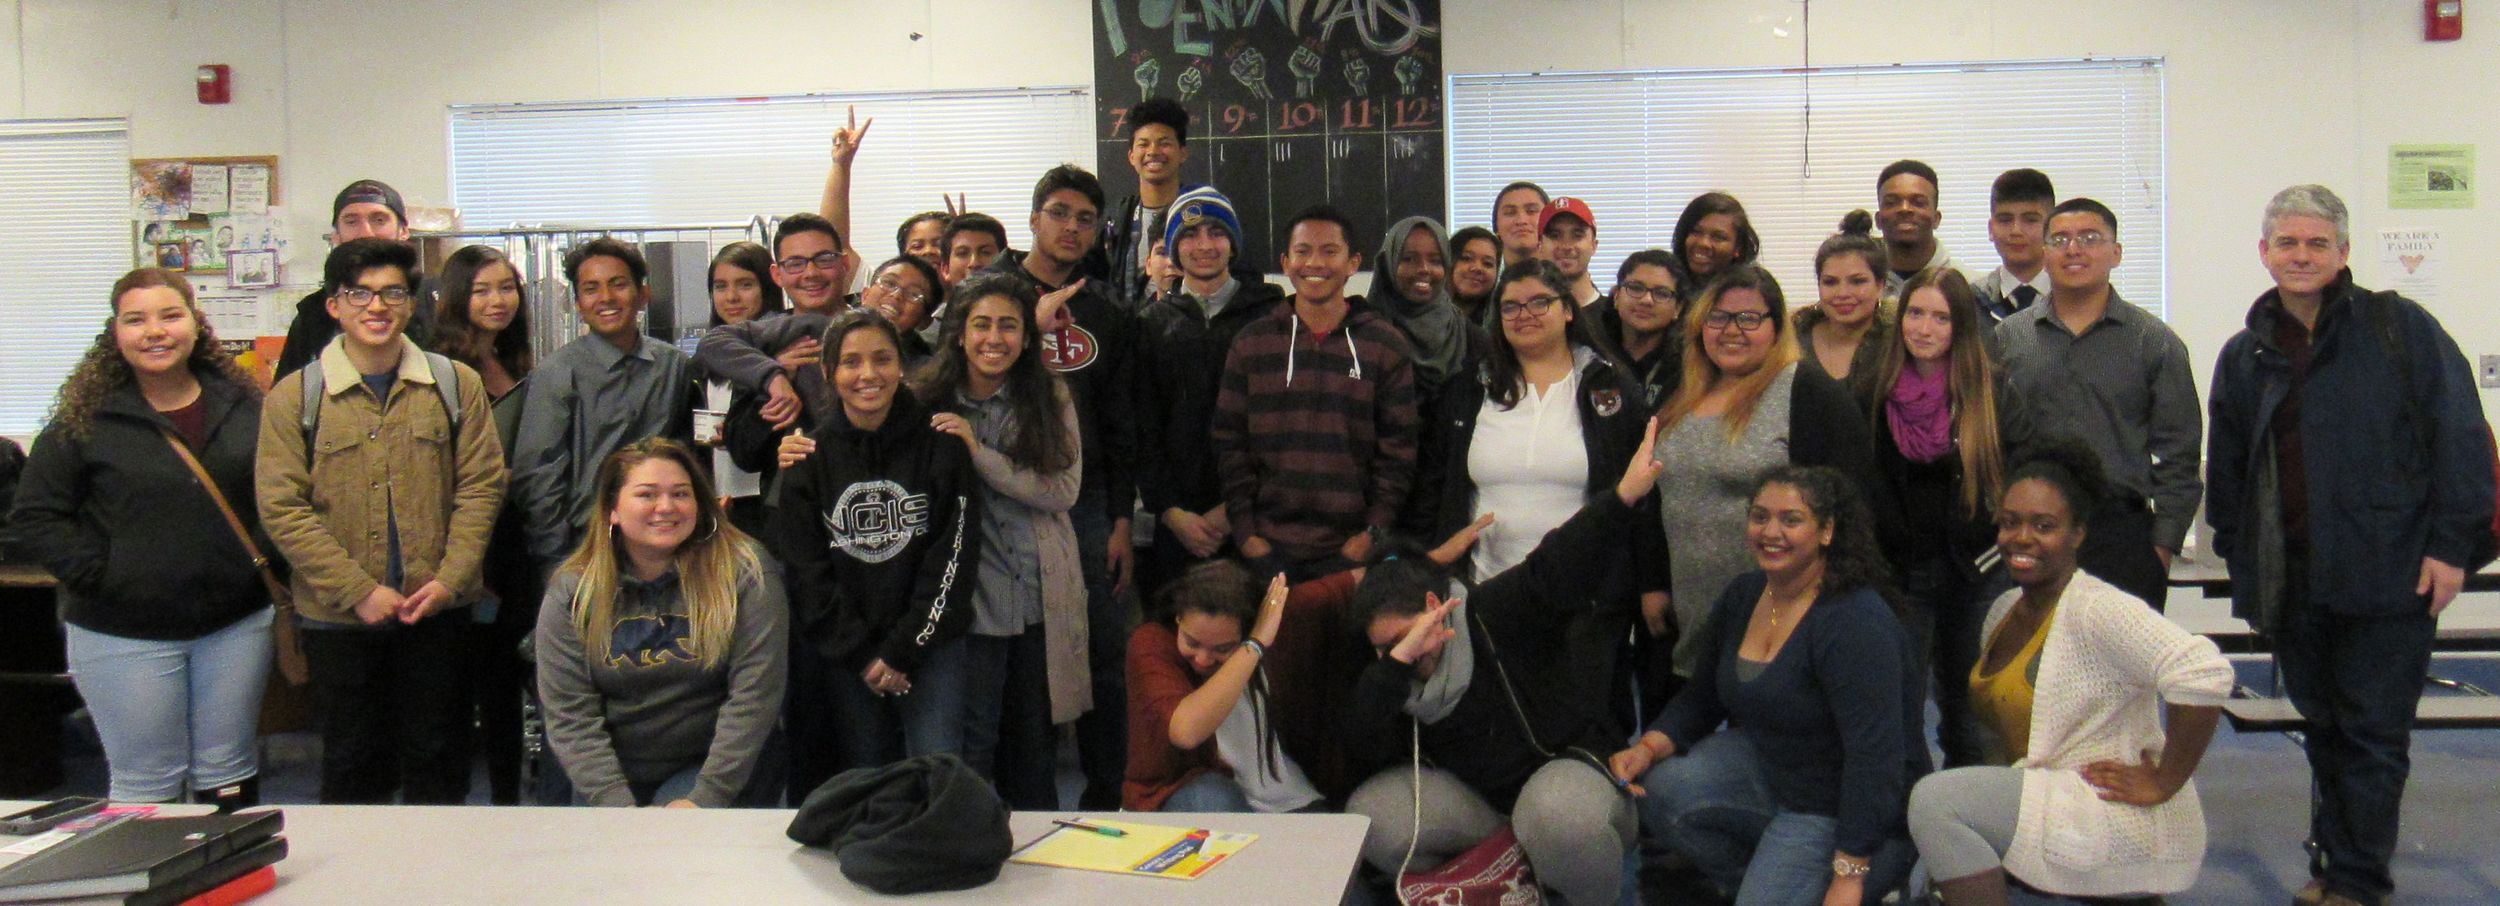 More than 50 students furthered their debate skills